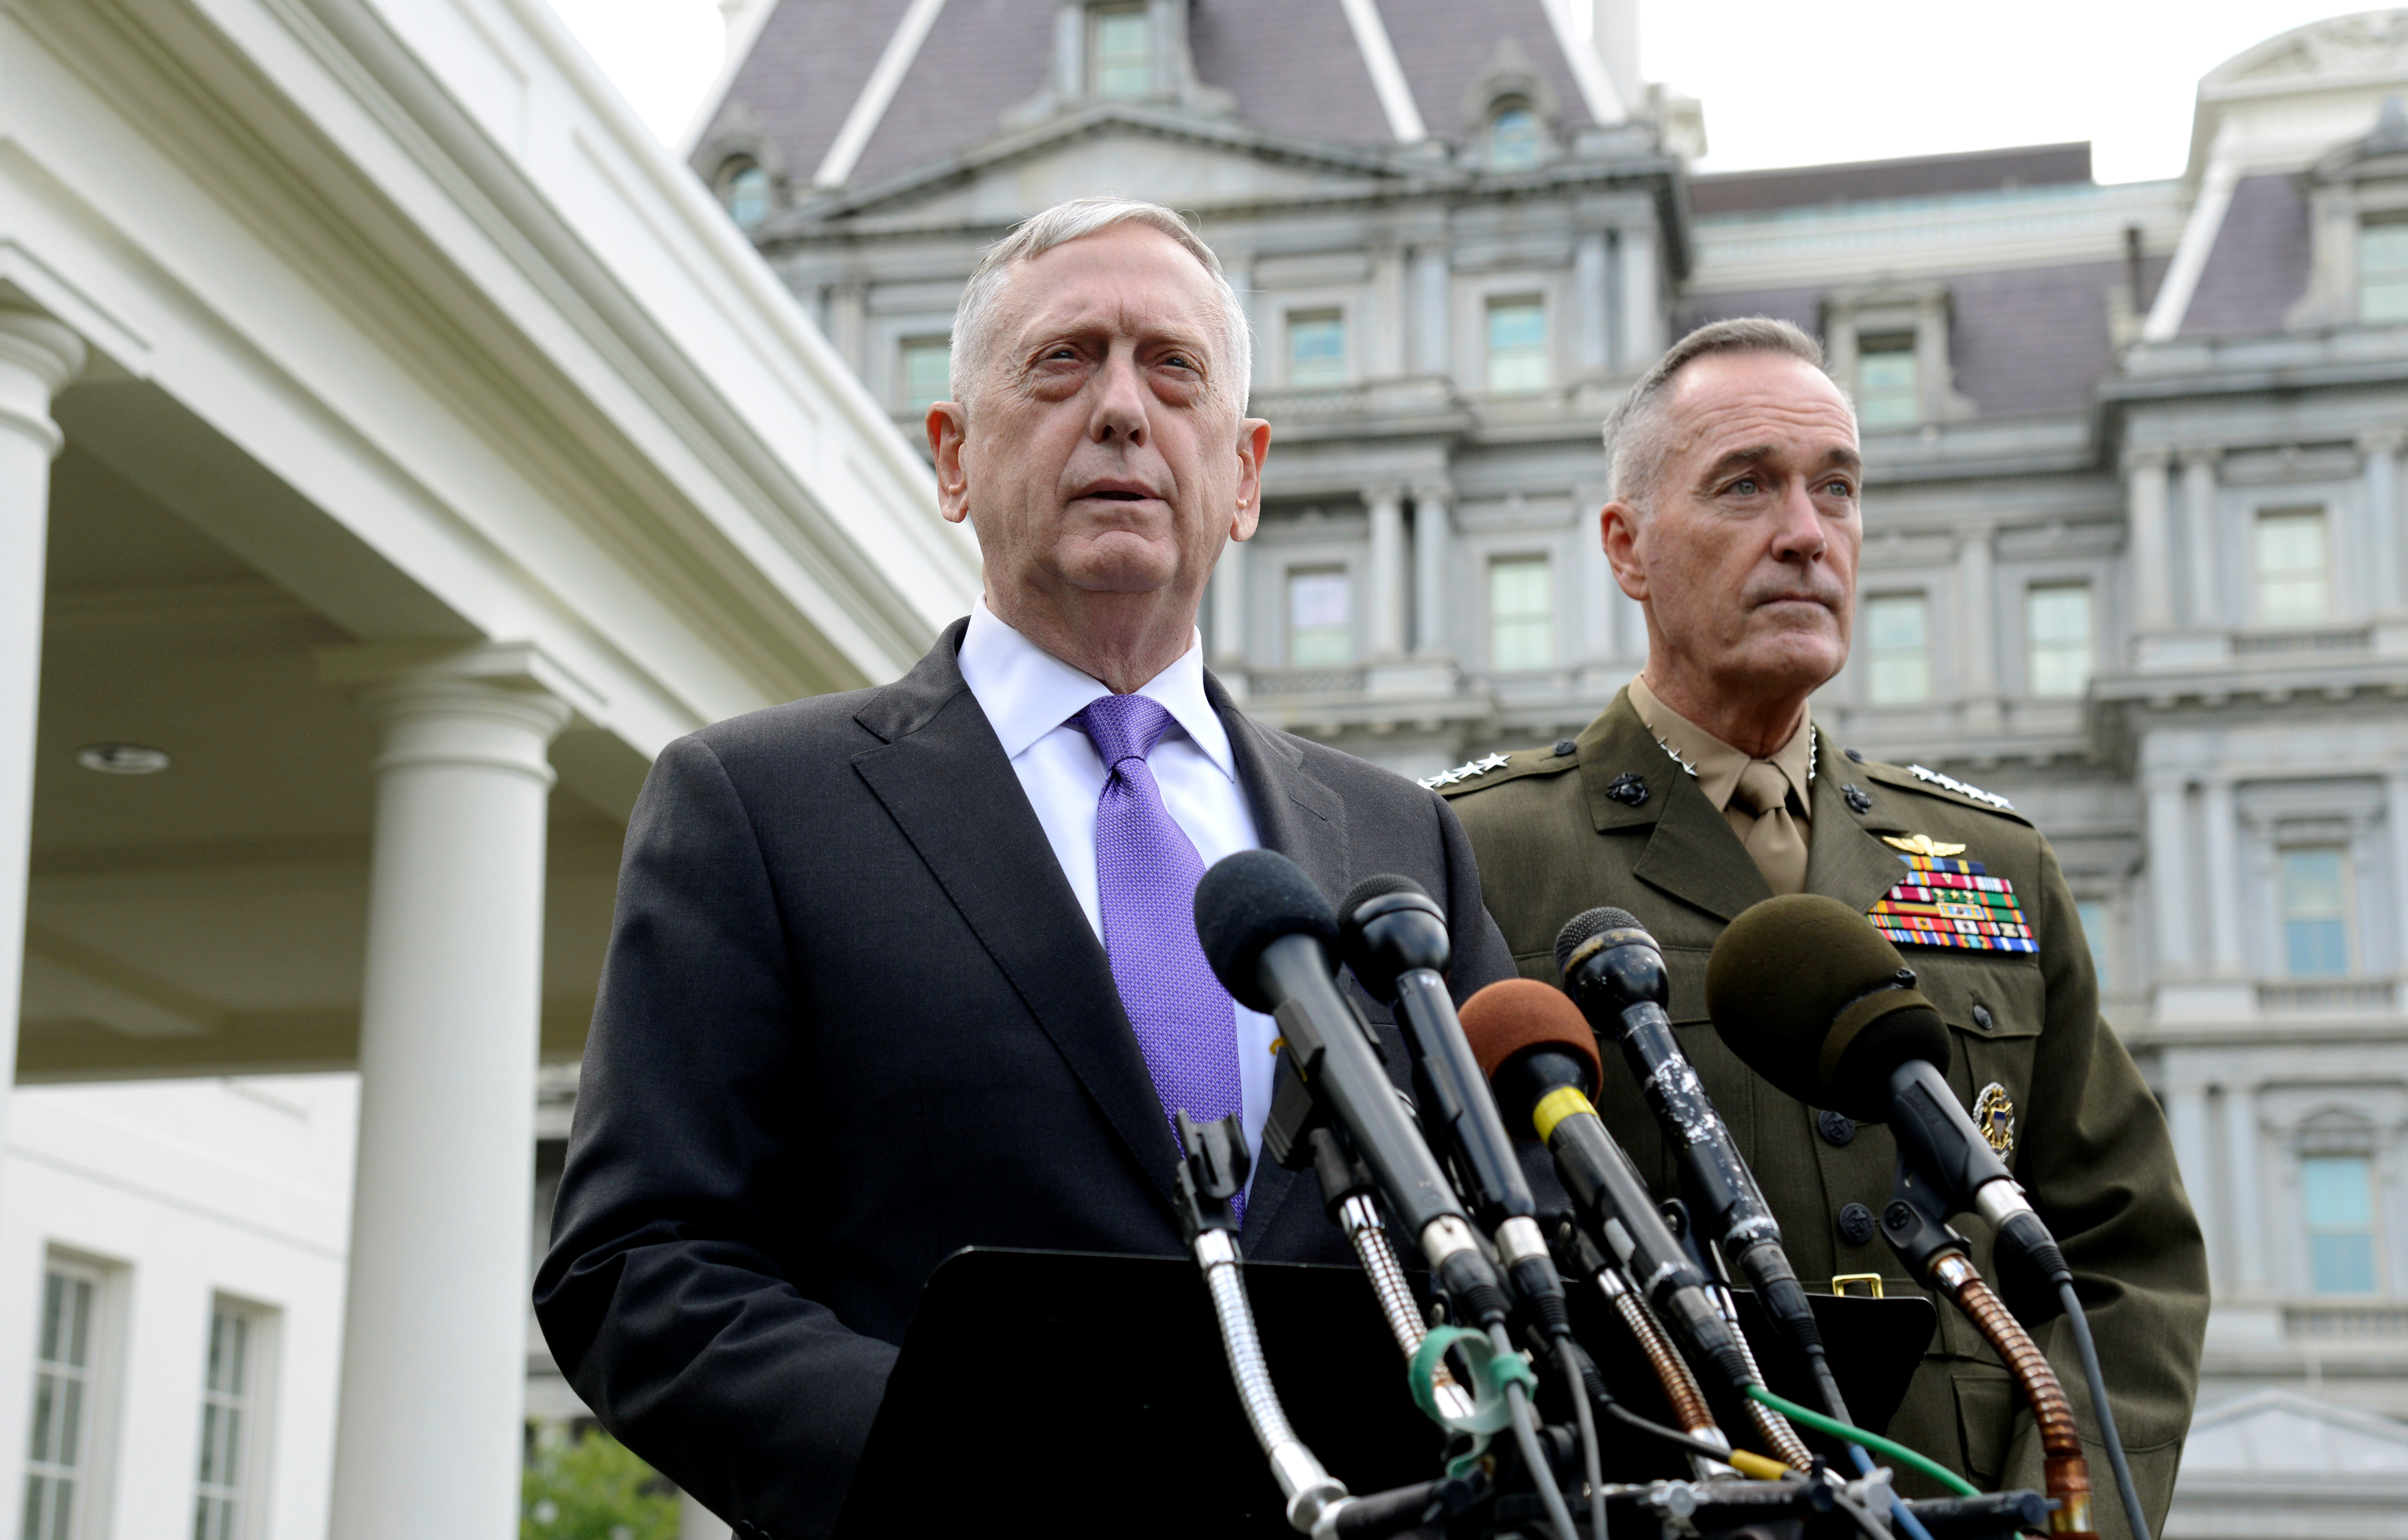 Secretary of Defense James Mattis (L) makes a statement outside the West Wing of the White House in response to North Korea's latest nuclear testing, as Chairman of the Joint Chiefs of Staff Gen. Joseph Dunford listens, in Washington, U.S., September 3, 2017.   REUTERS/Mike Theiler